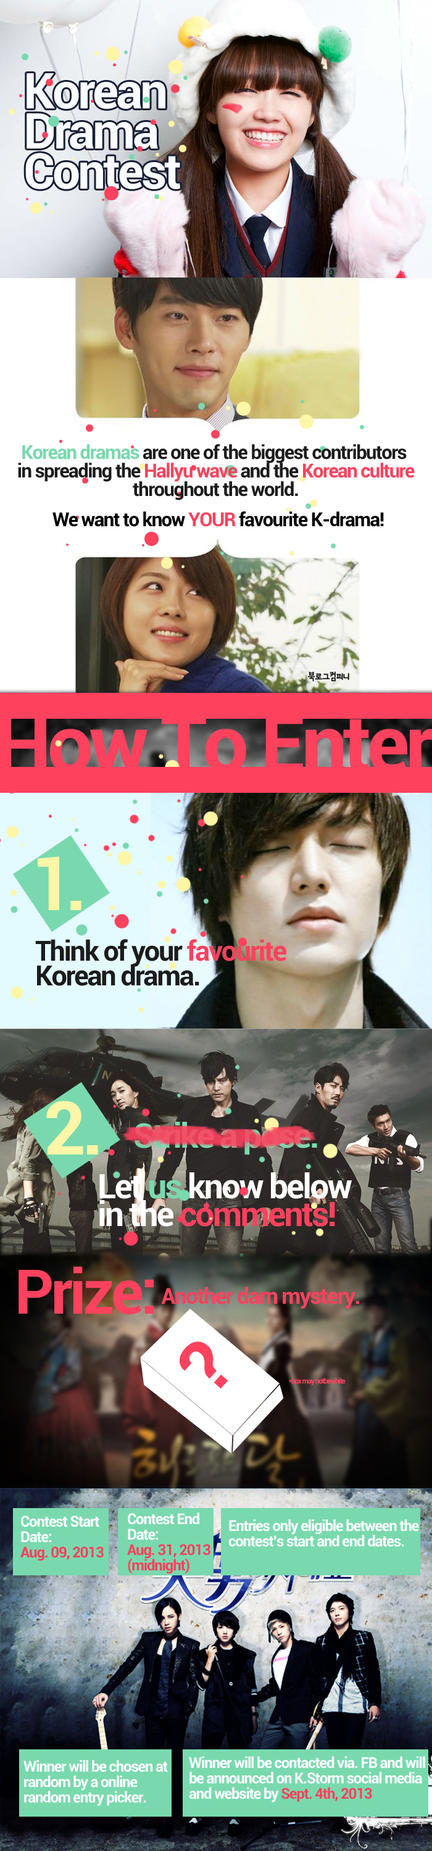 SFU K.STORM Summer 2013 Korean Drama Contest by UberzErO